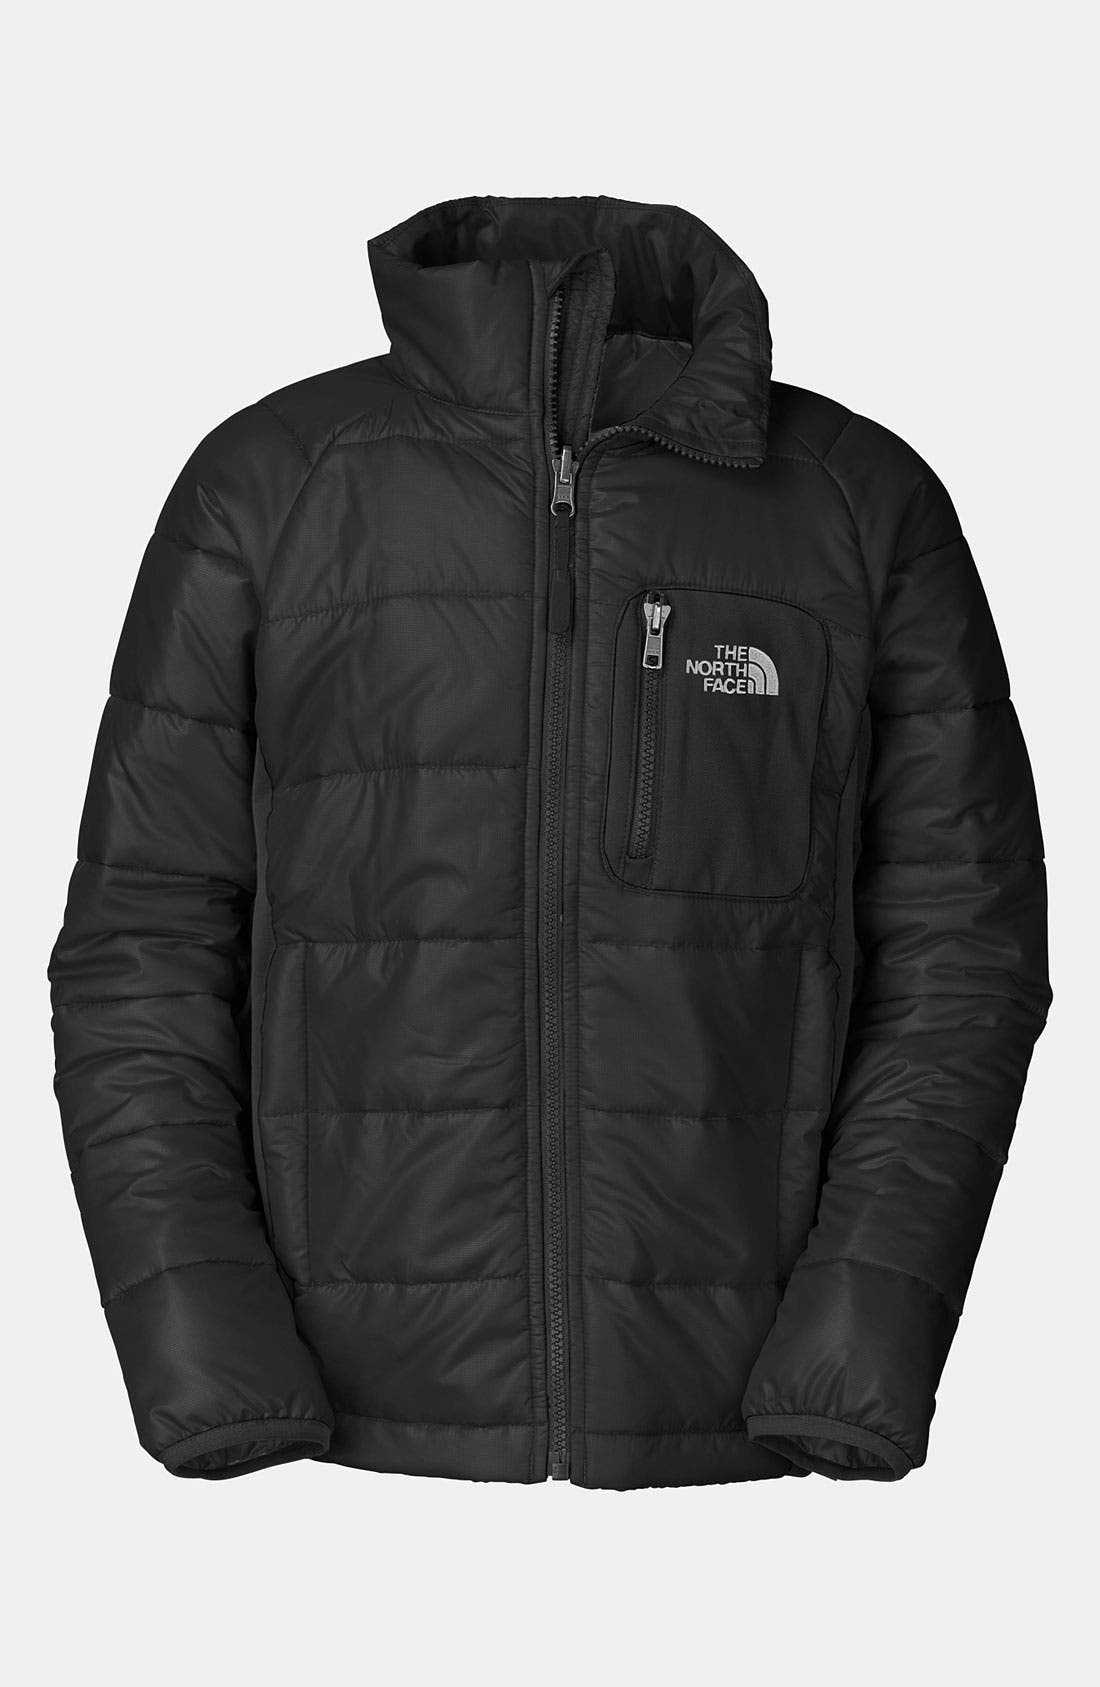 Main Image - The North Face 'Sibrian' Jacket (Little Boys)